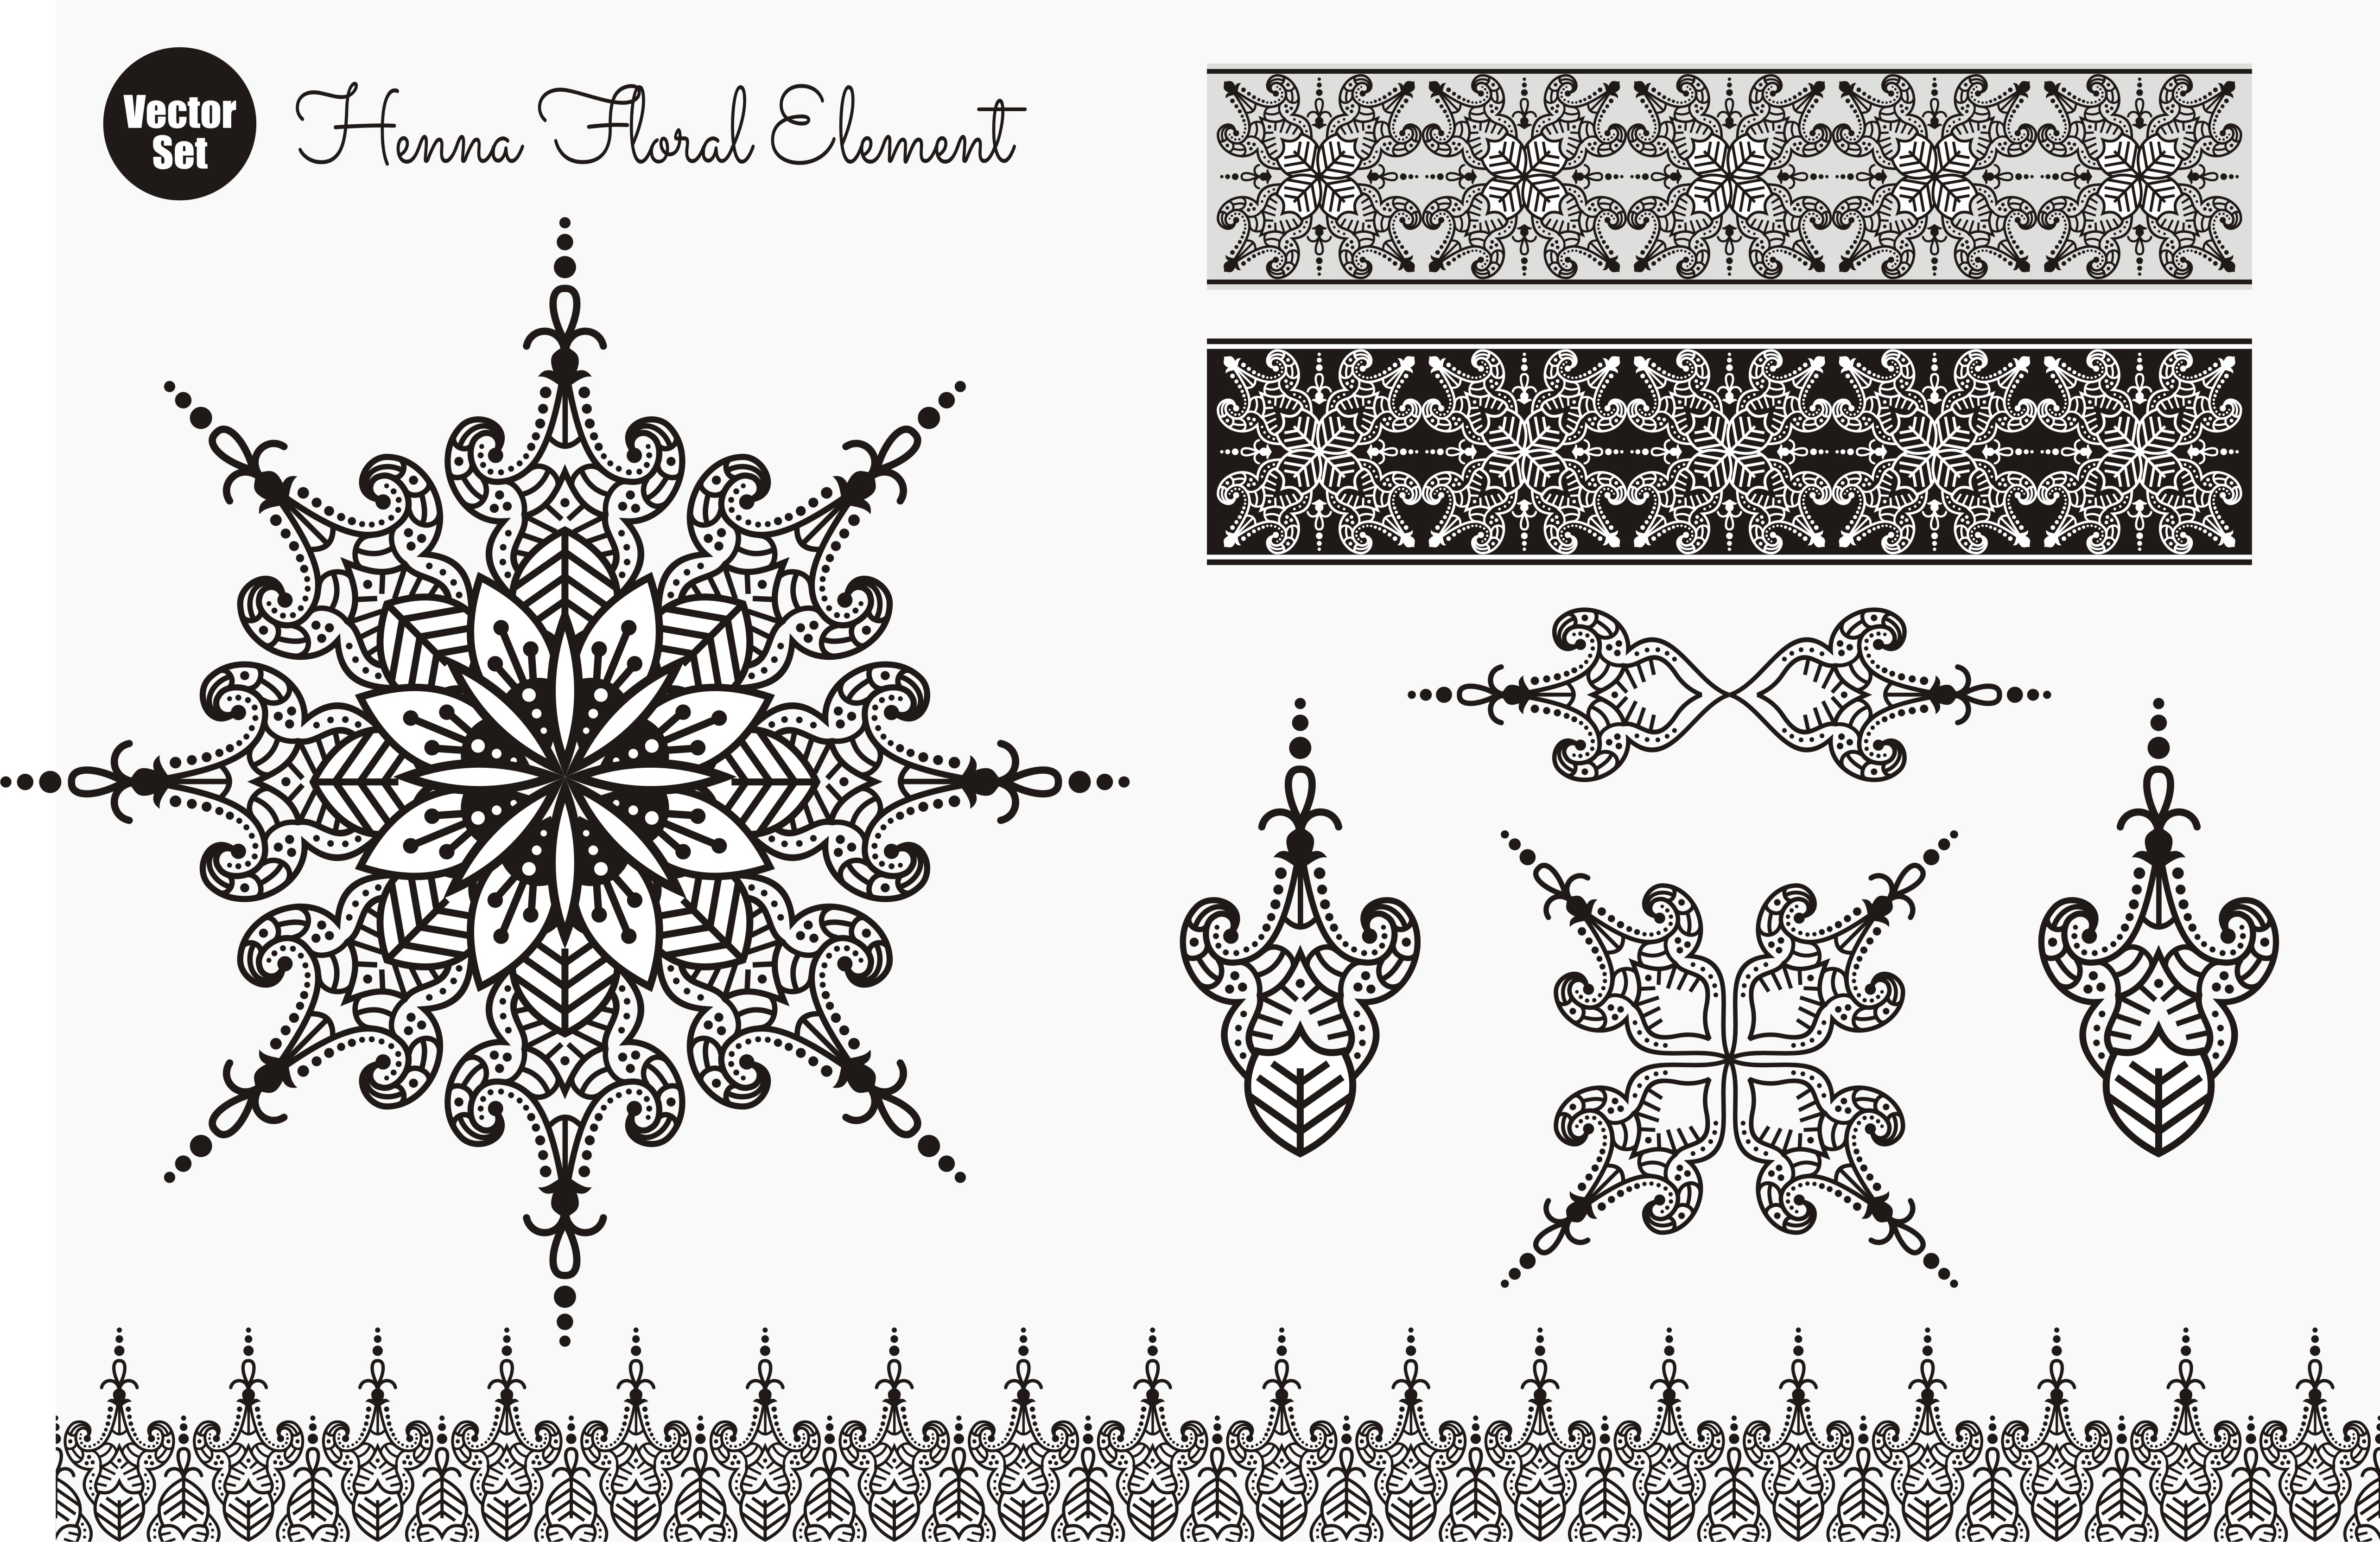 Download Free Vector Set Of Henna Floral Elements Graphic By Ahsancomp Studio for Cricut Explore, Silhouette and other cutting machines.